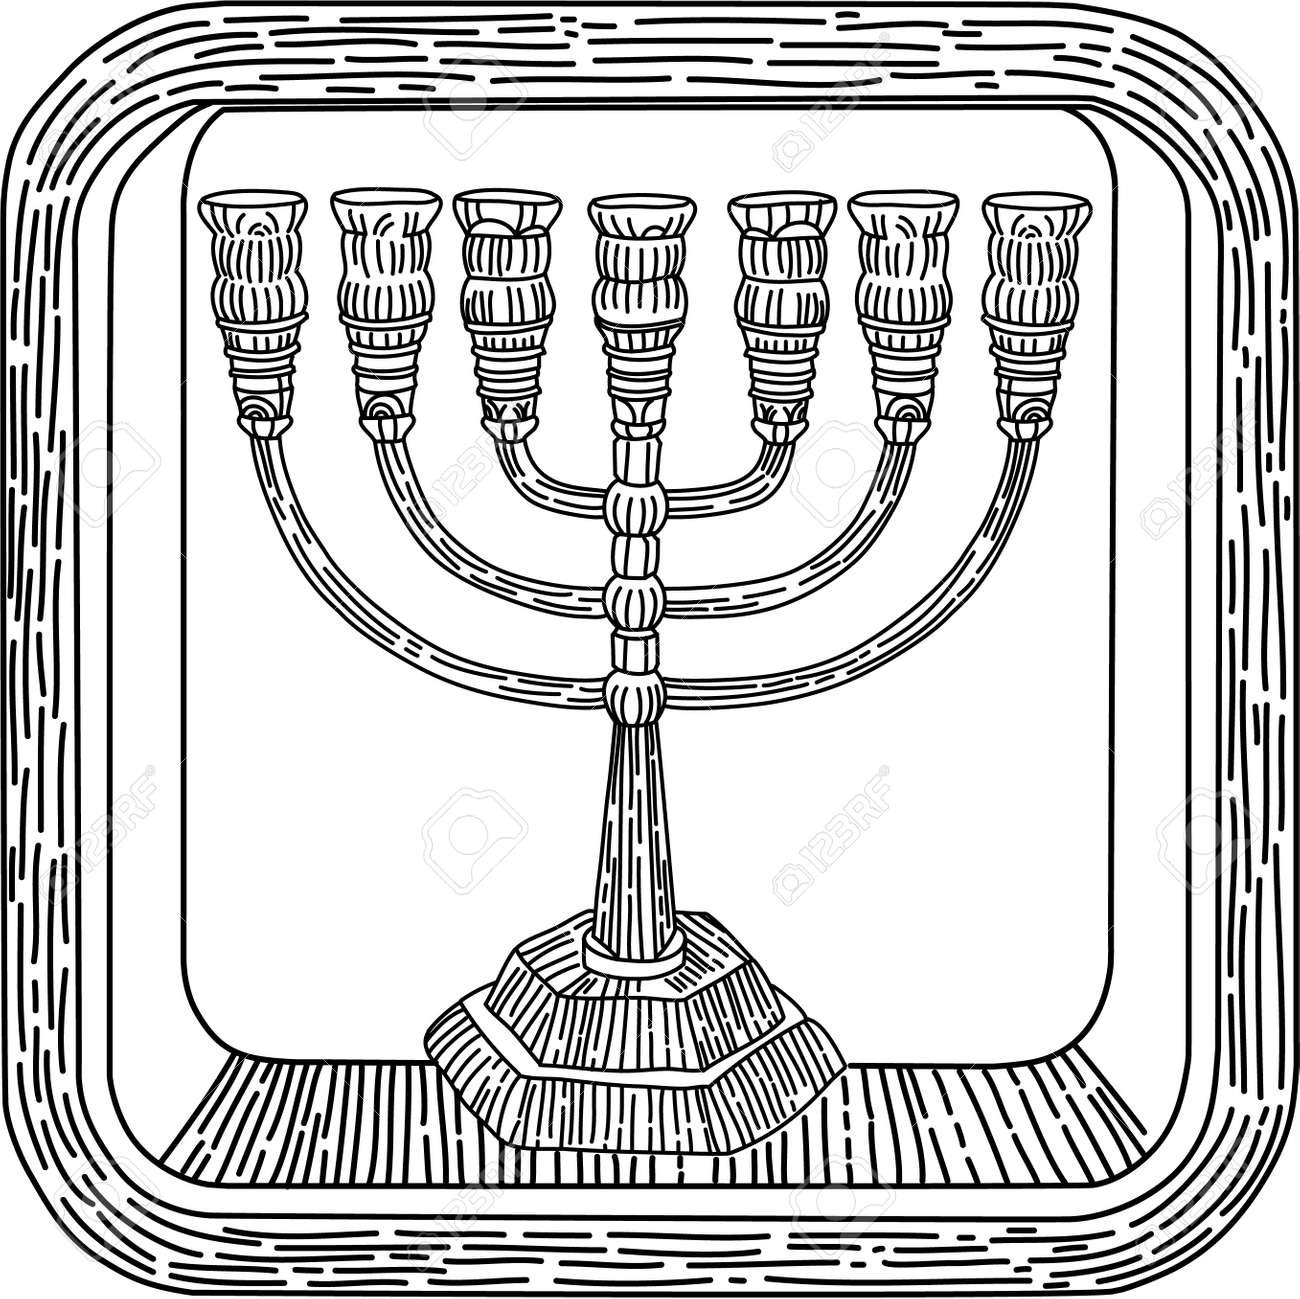 Religious symbols of judaism image collections symbol and sign ideas icon the jewish religious symbol of judaism royalty free cliparts icon the jewish religious symbol of biocorpaavc Image collections